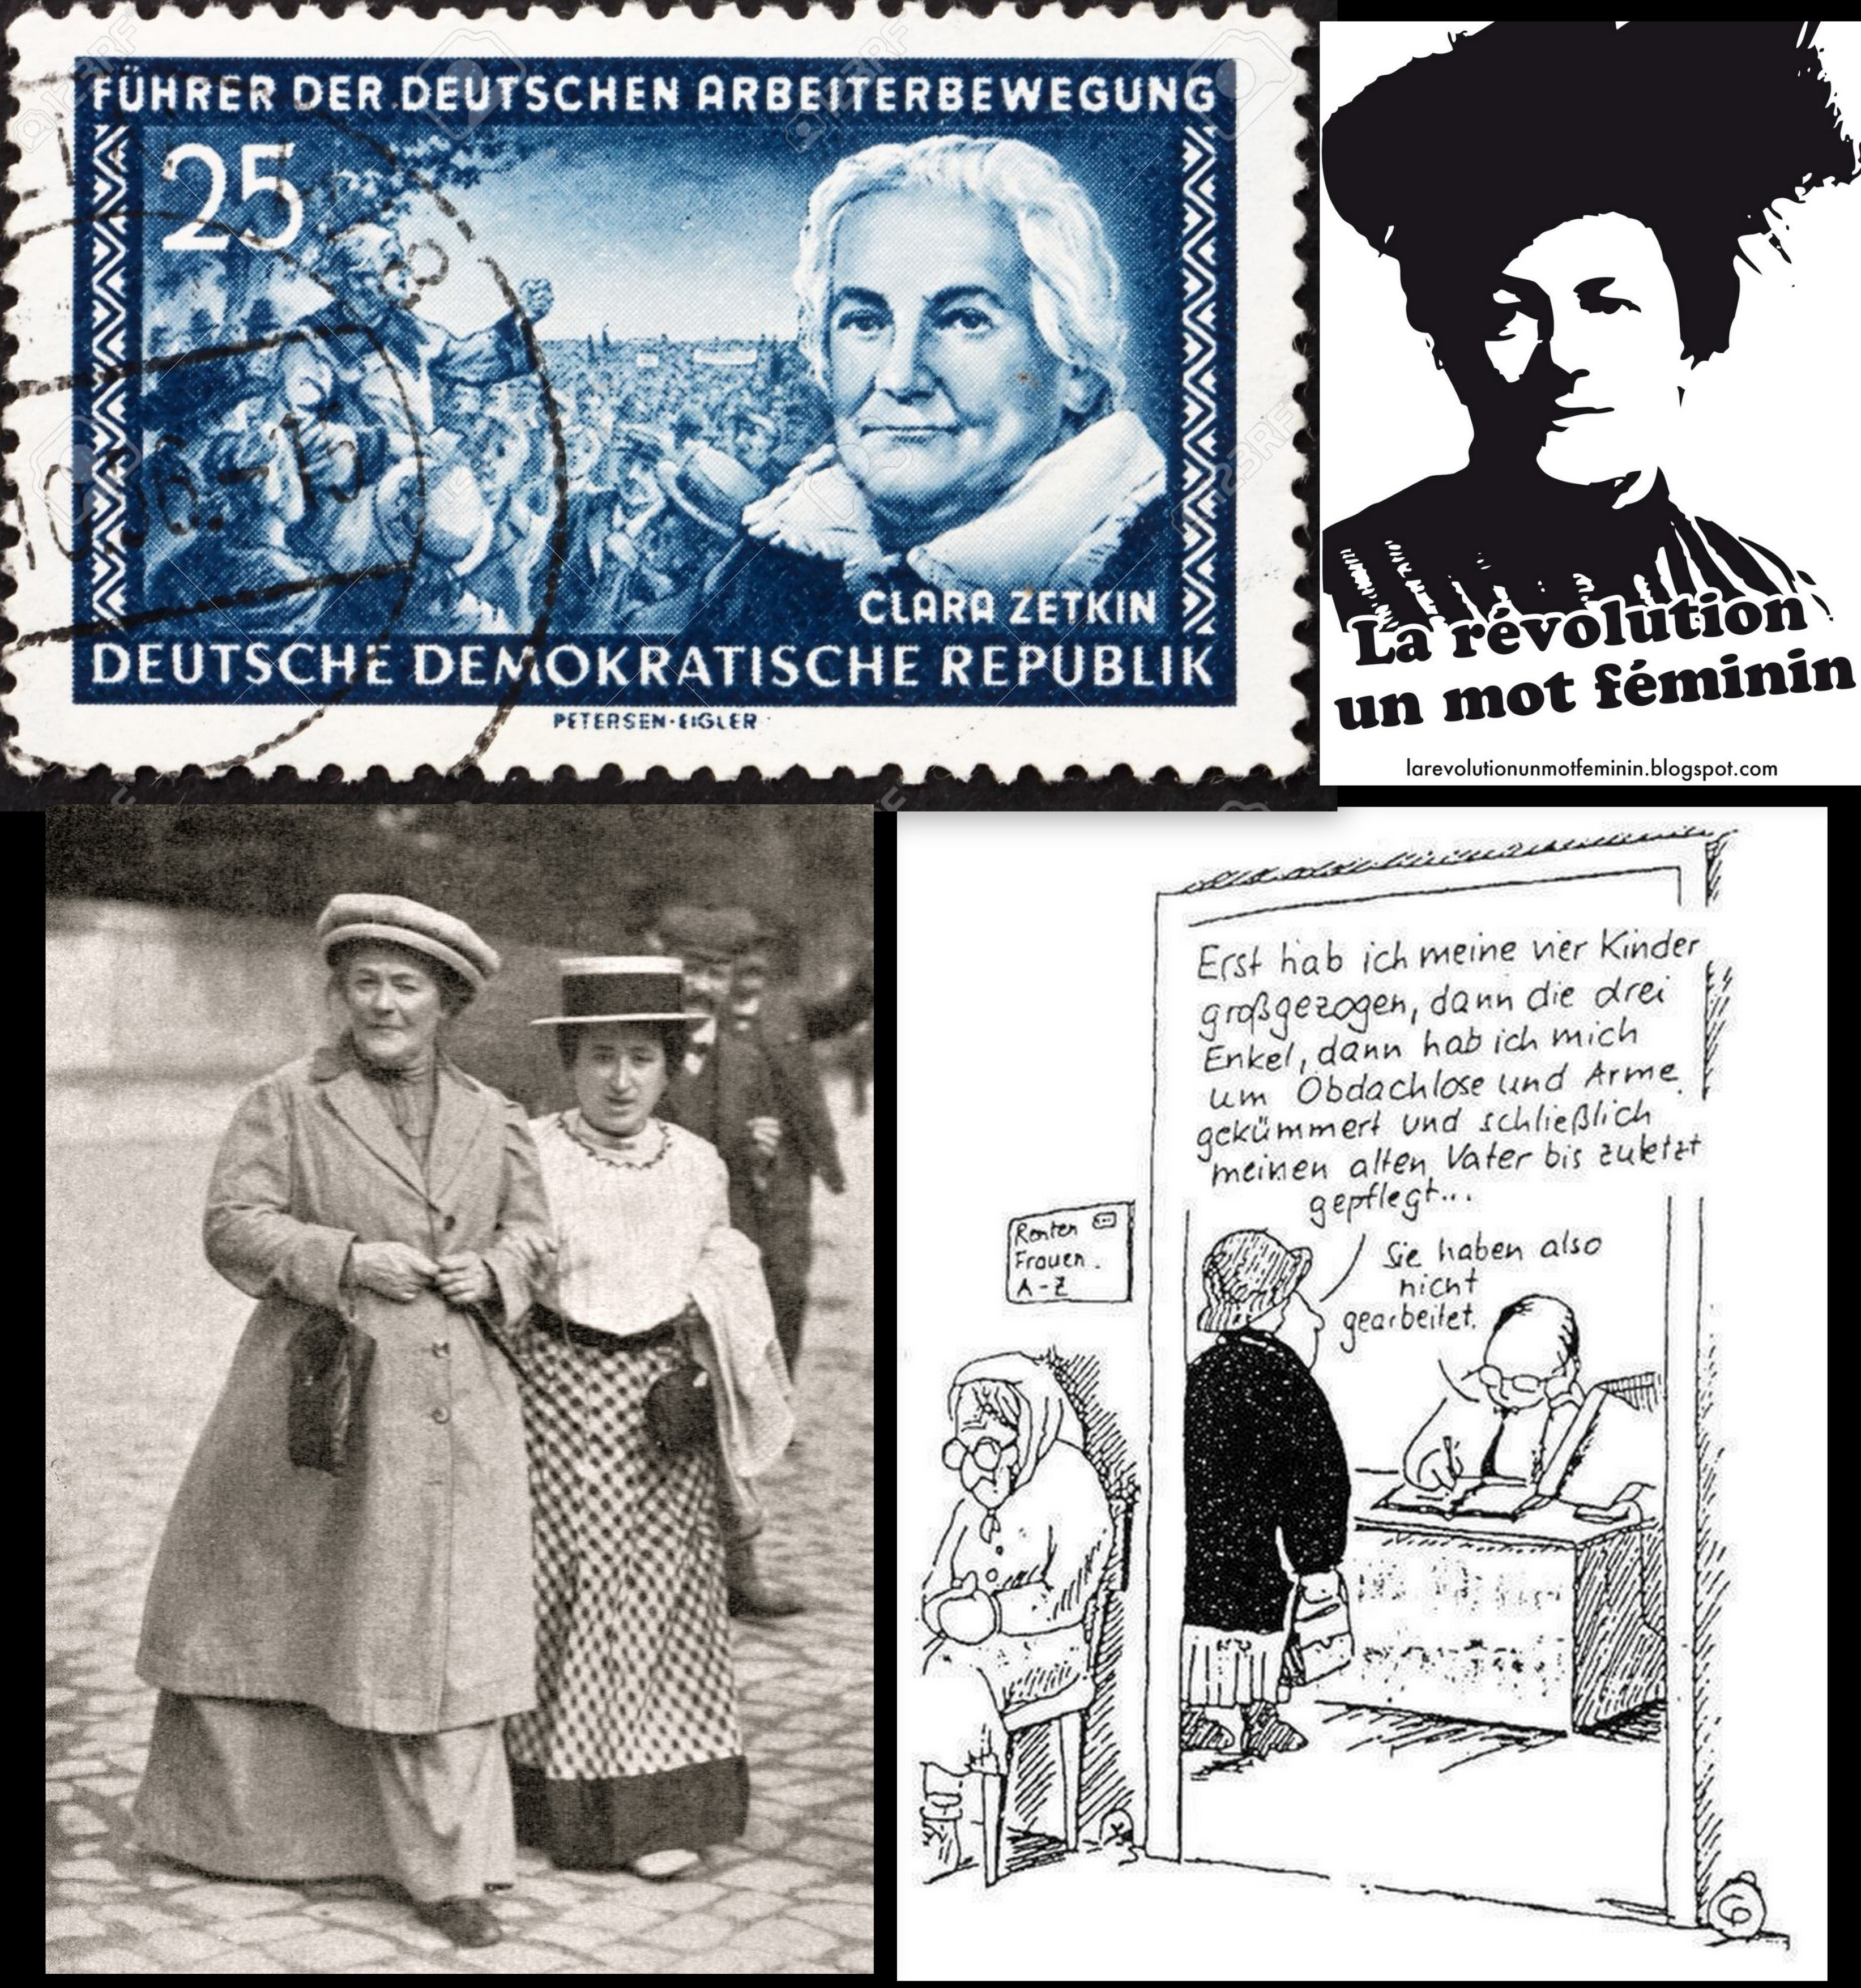 Frauentag Zetkin luxemburg collage